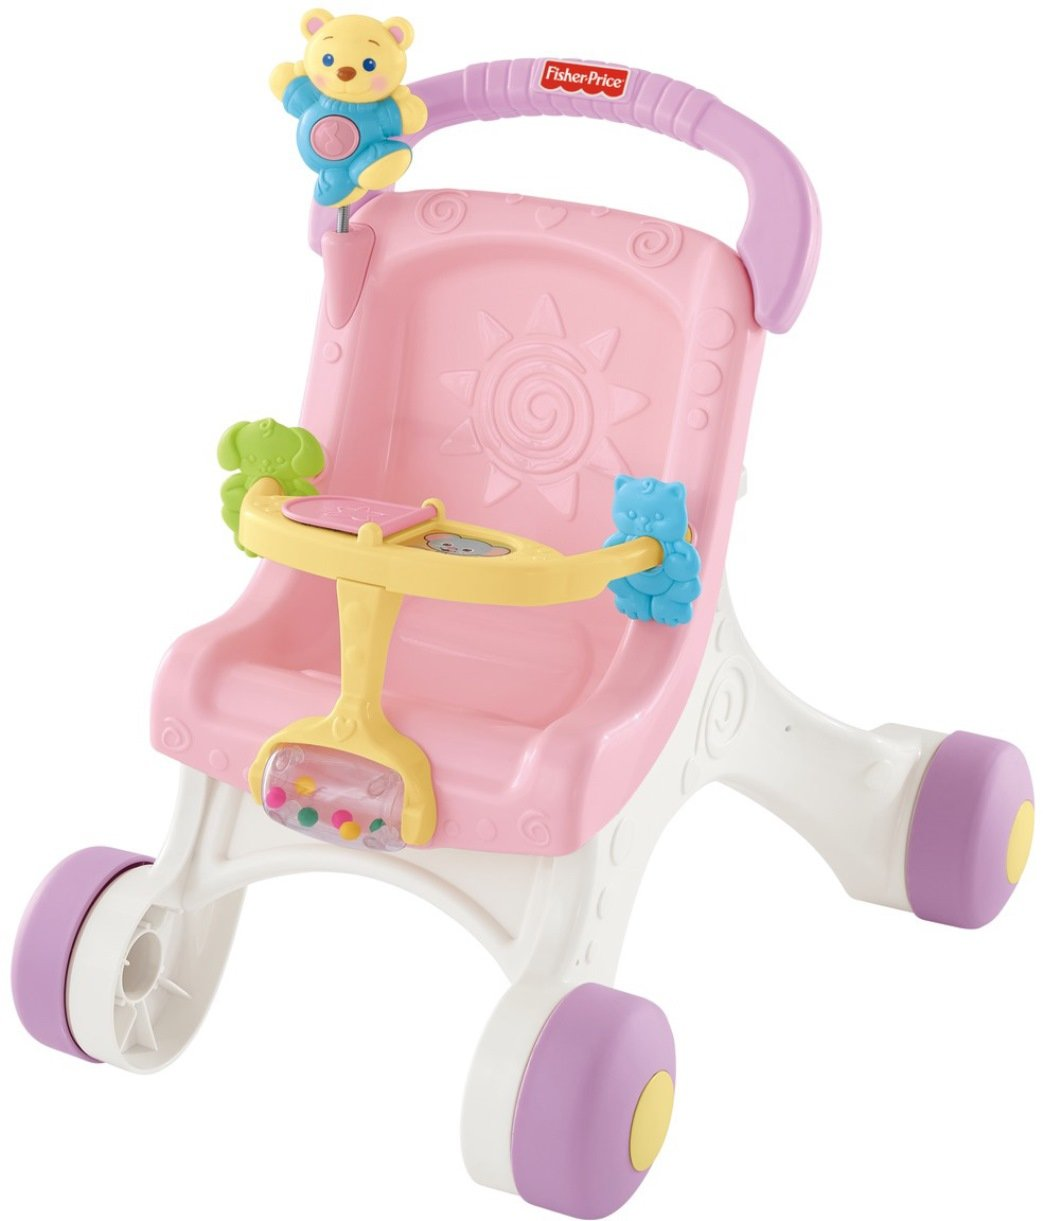 Best Gifts for 1 Year Old Girls in 2017 - Itsy Bitsy Fun